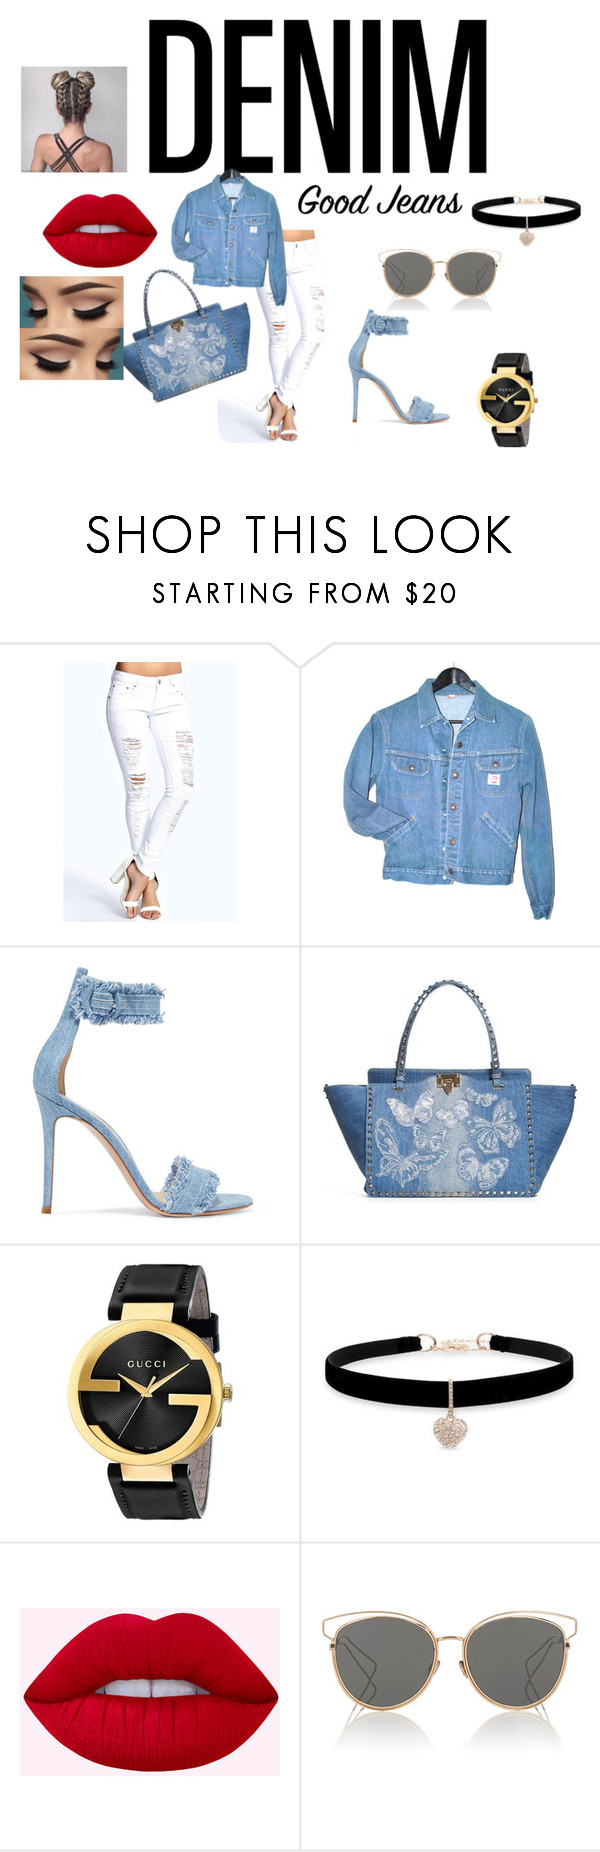 """Denim Paradise"" by bluemoon-shine ❤ liked on Polyvore featuring Boohoo, Gianvito Rossi, Valentino, Gucci, Betsey Johnson, Lime Crime and Christian Dior"